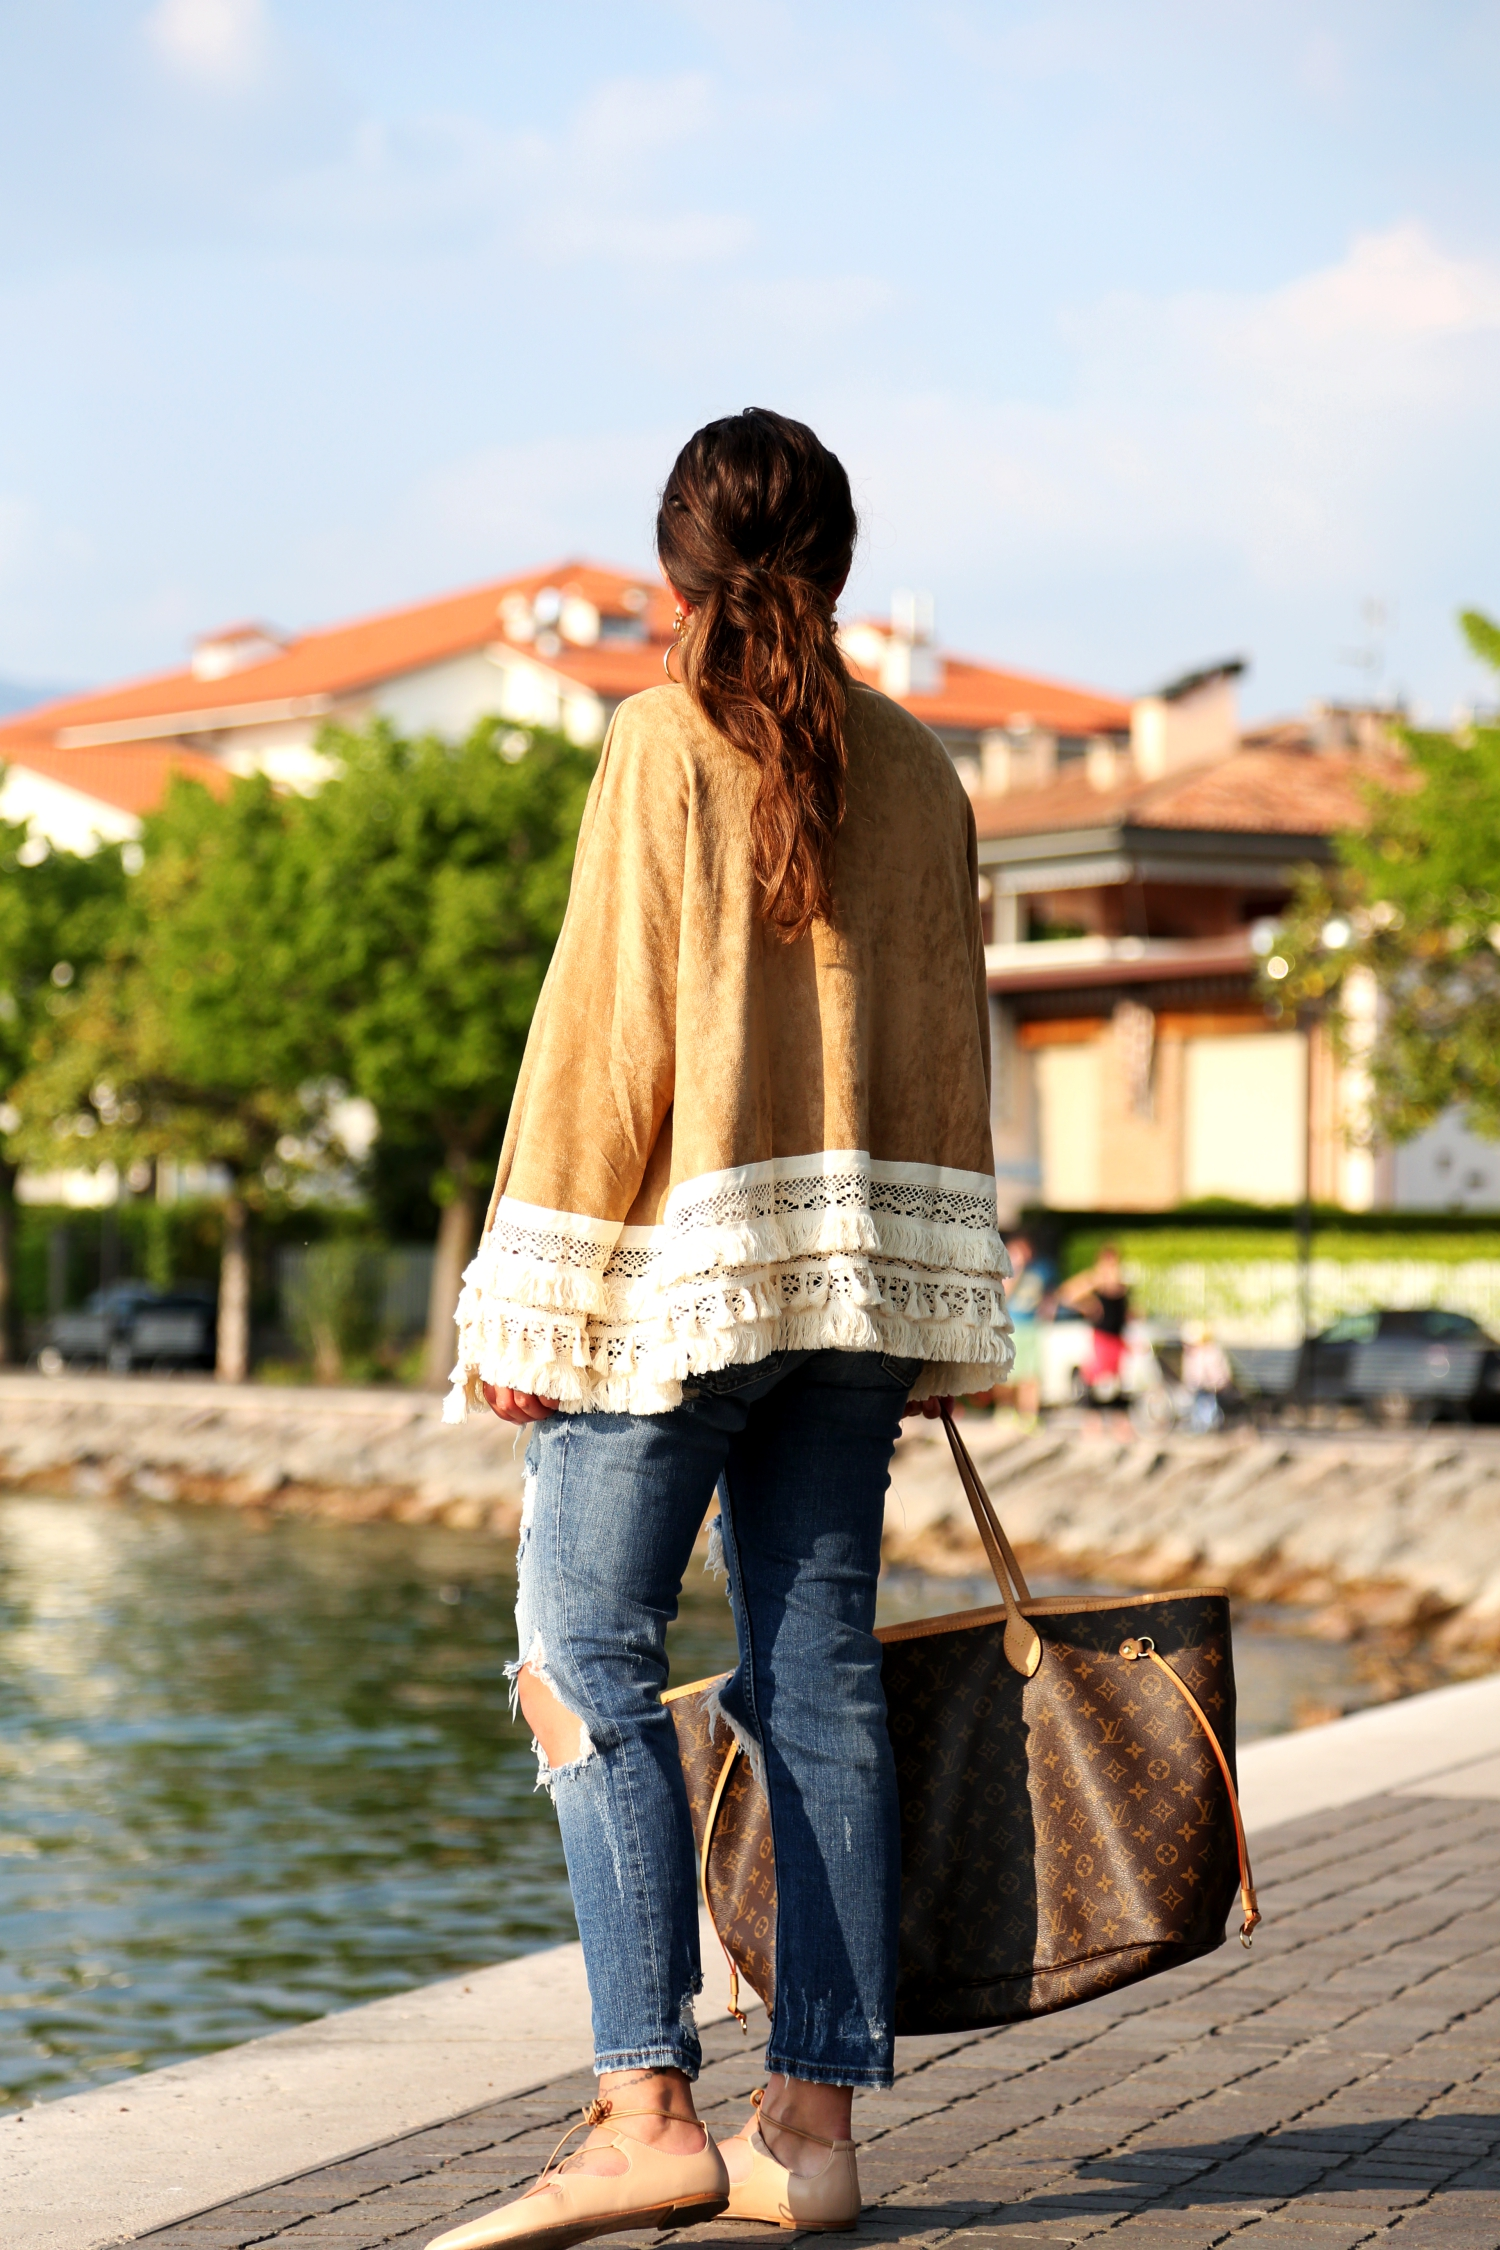 outfit-ripped-jeans-louis-vuitton-bag-kimono-fashionblogger-look-spring-italy